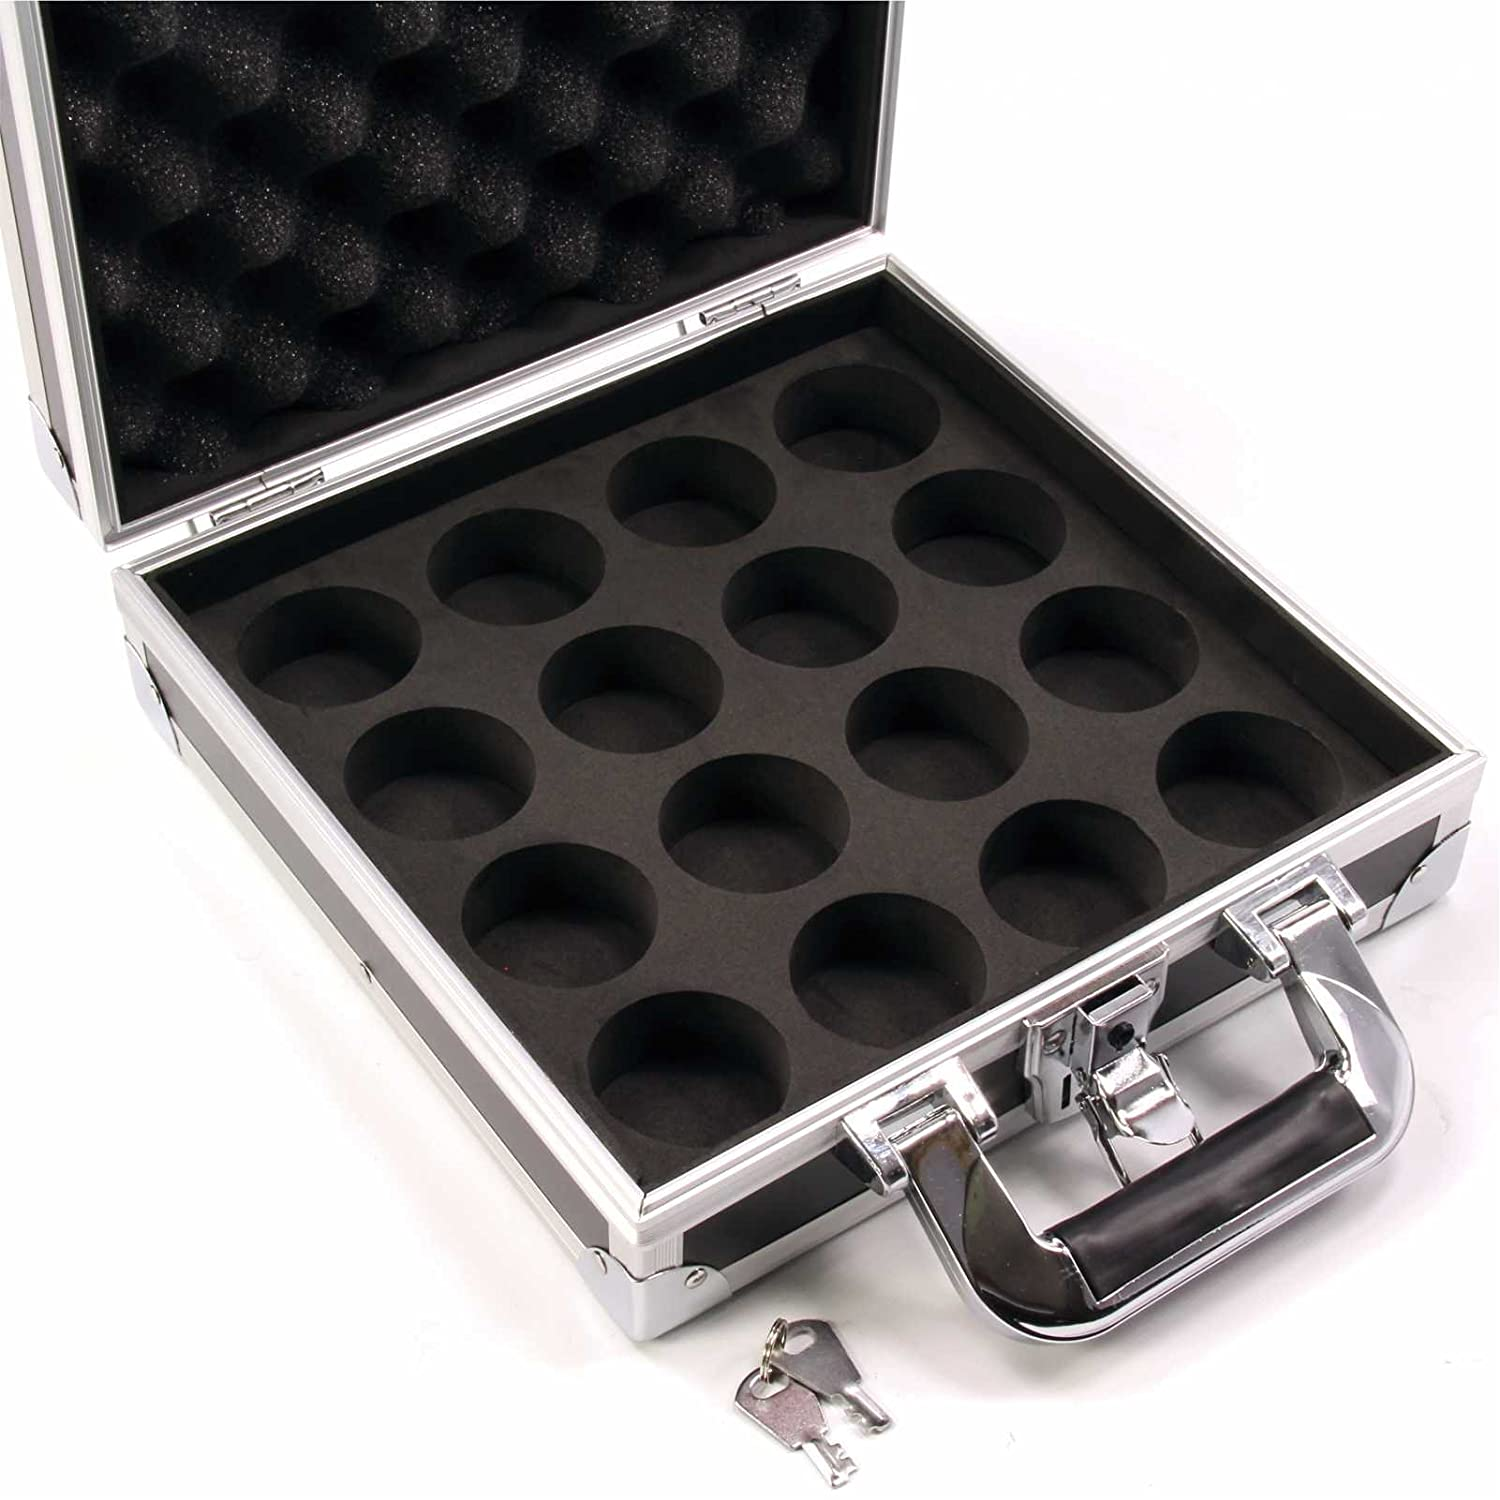 Hard Aluminium 16 x 2' English Pool Ball Carrying & Storage Case LOCKABLE - Ideal for storing your league pool balls